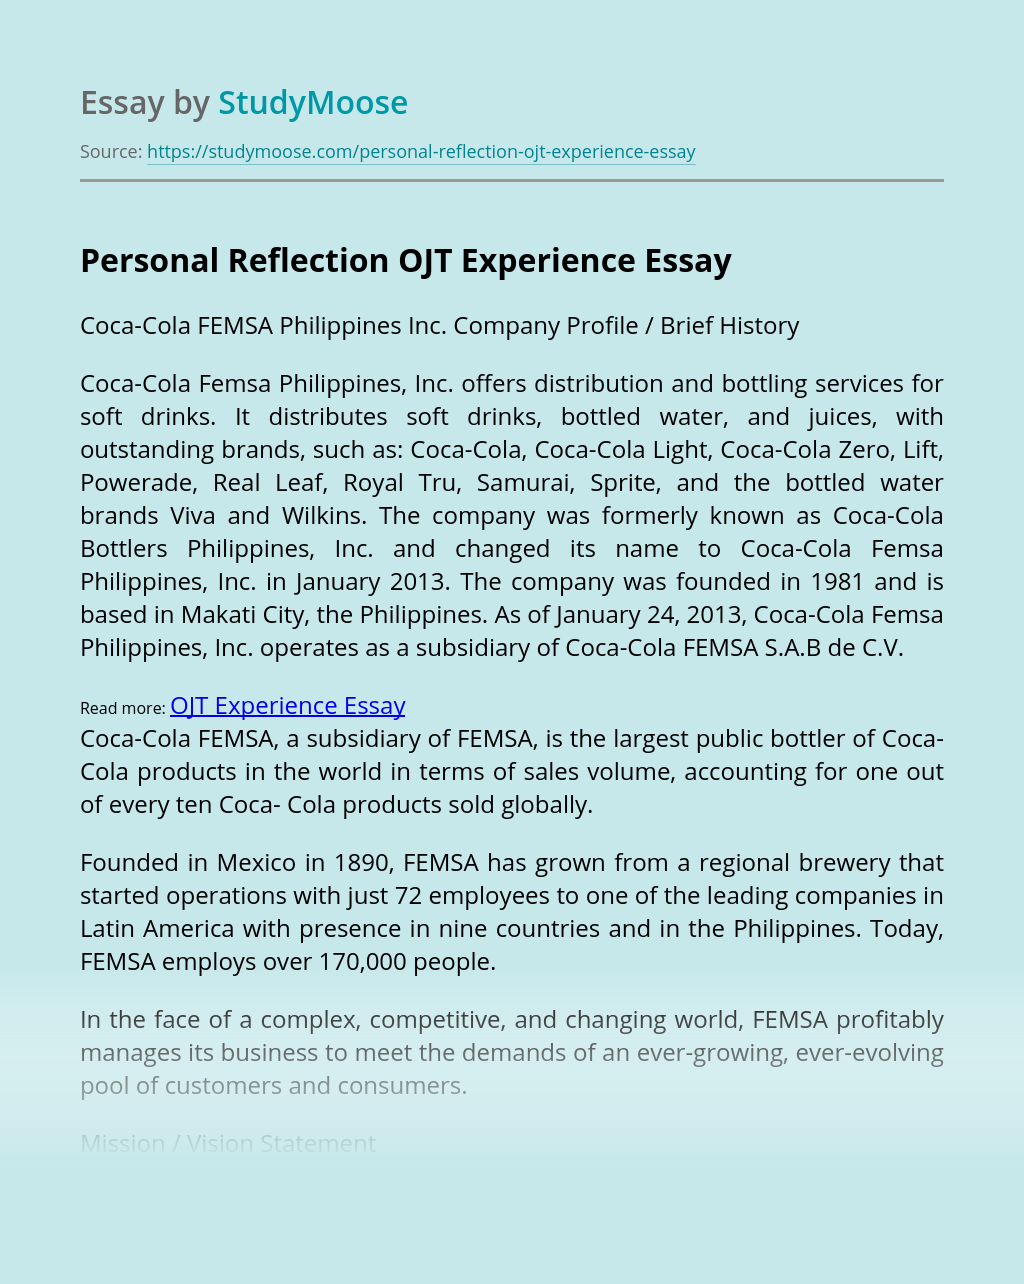 Personal Reflection OJT Experience